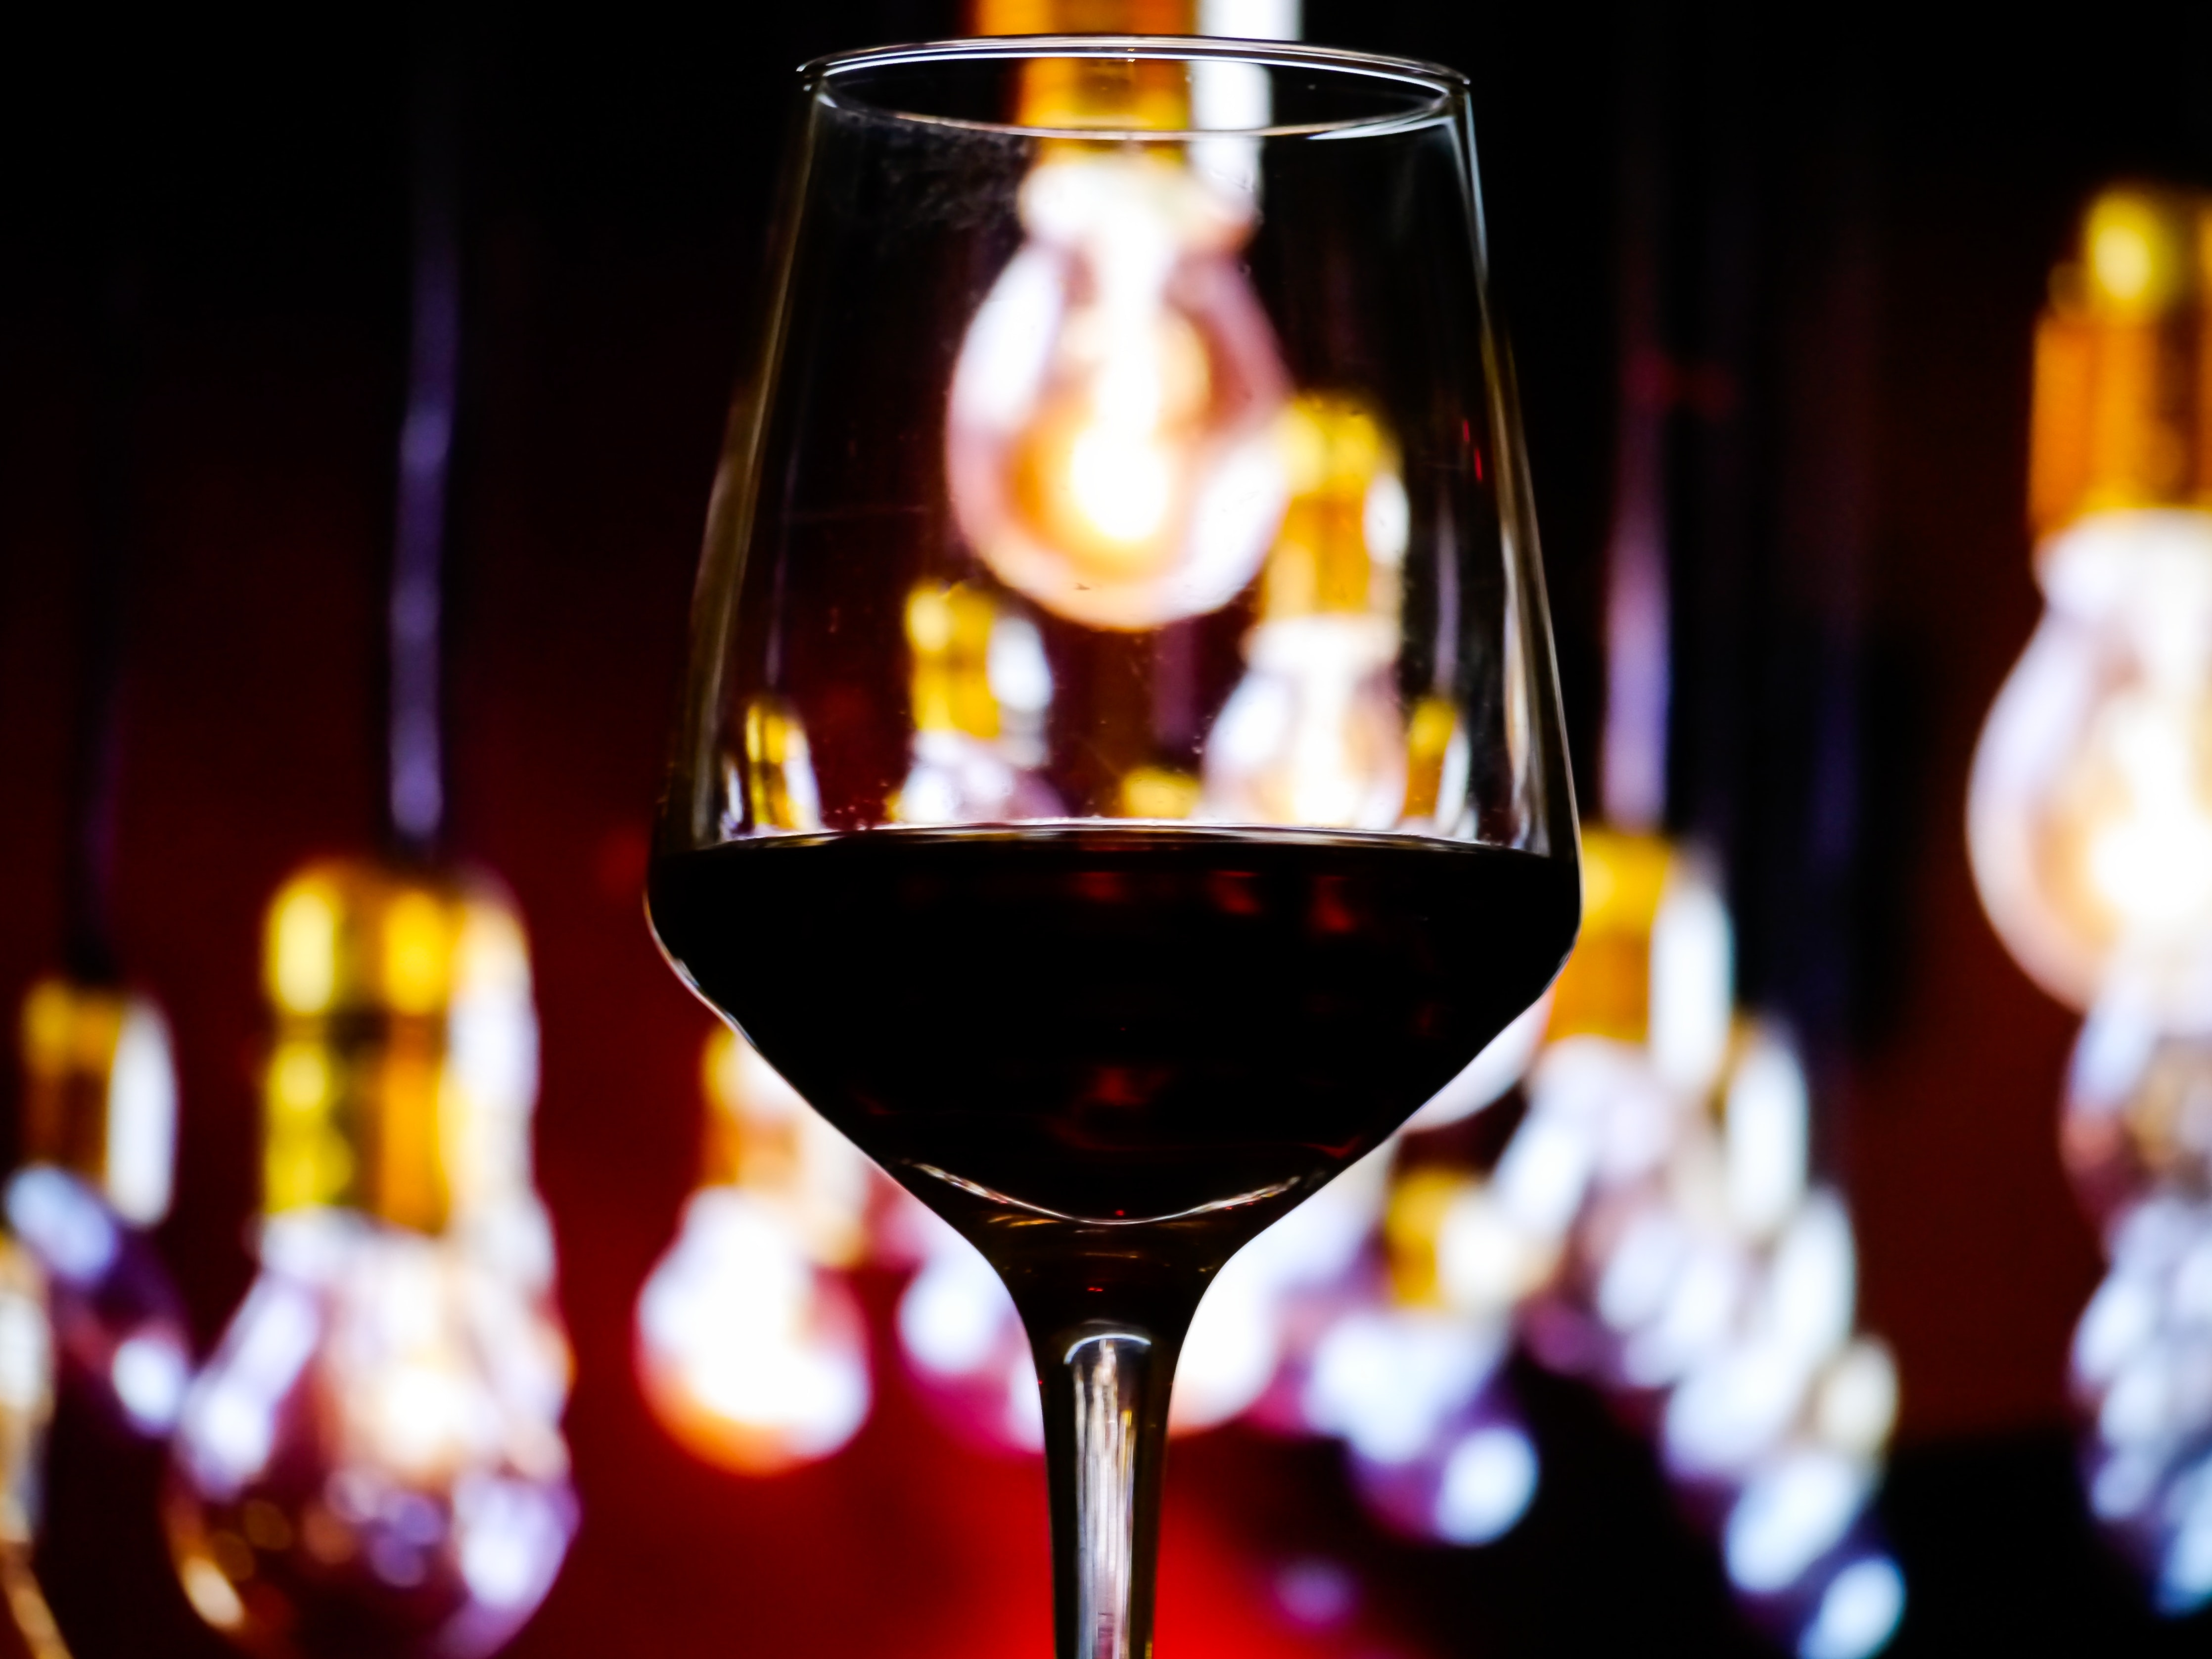 Free stock photo of illusion, red wine, string lights